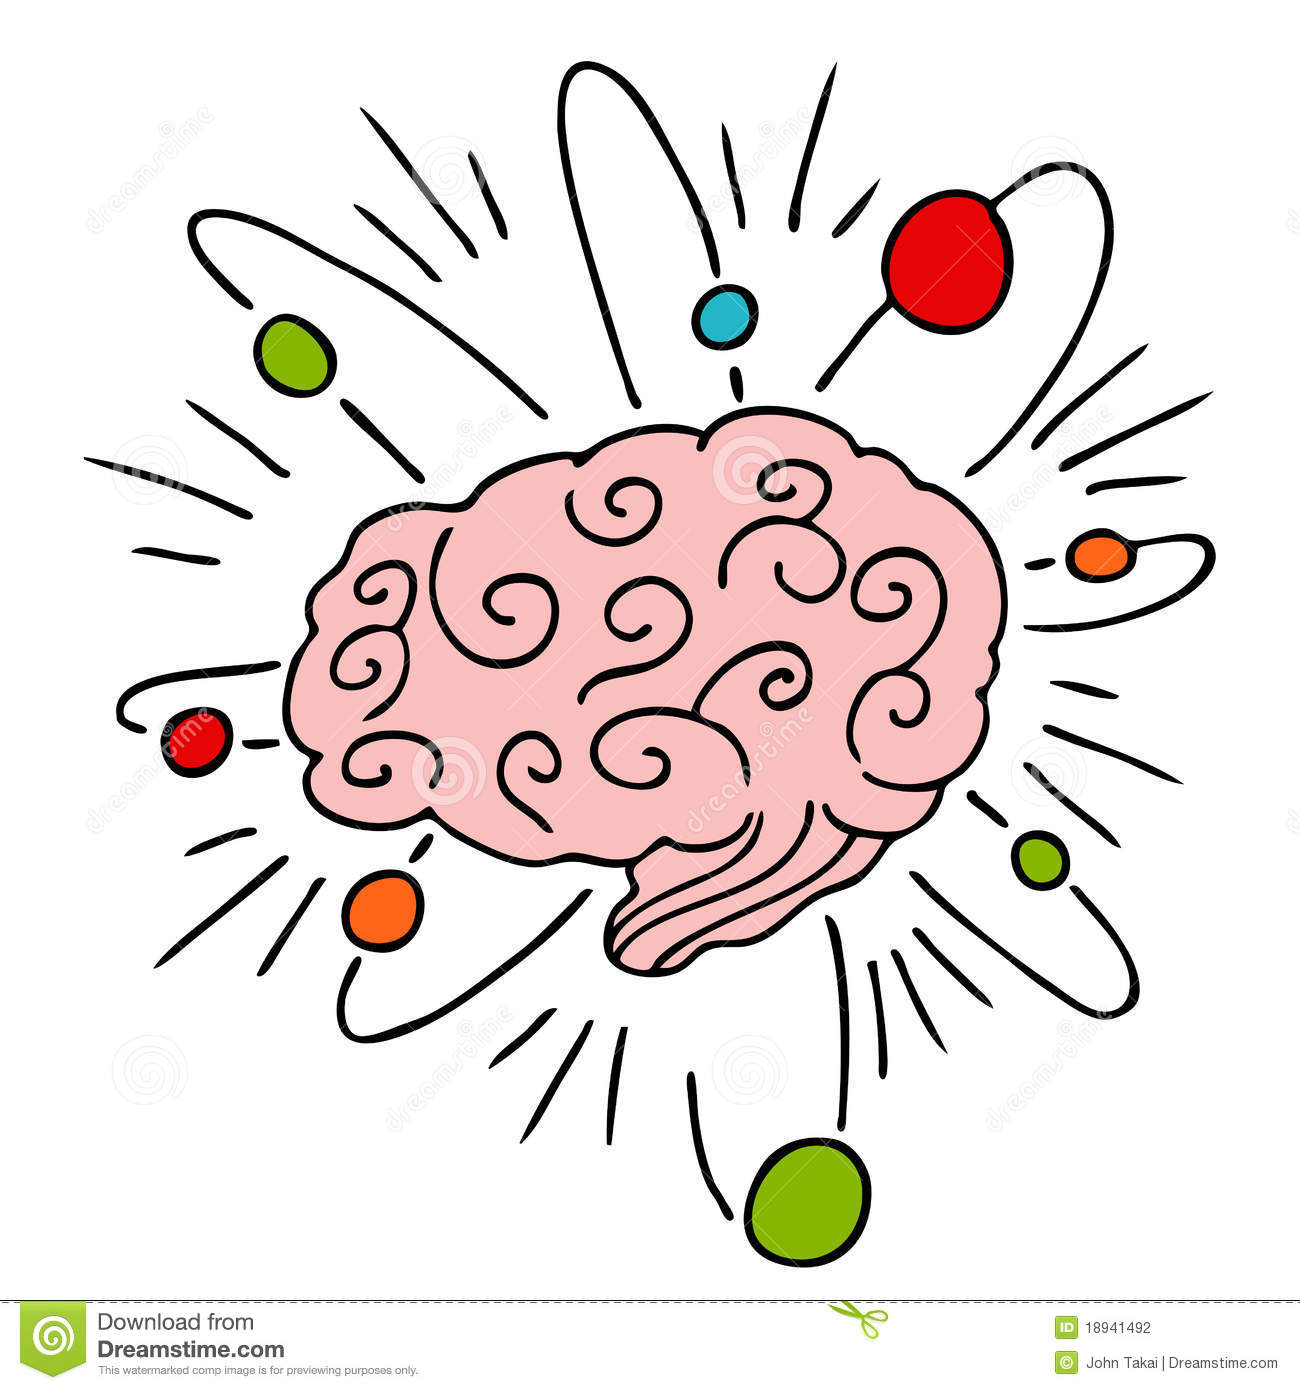 Foods increase concentration focus image 2